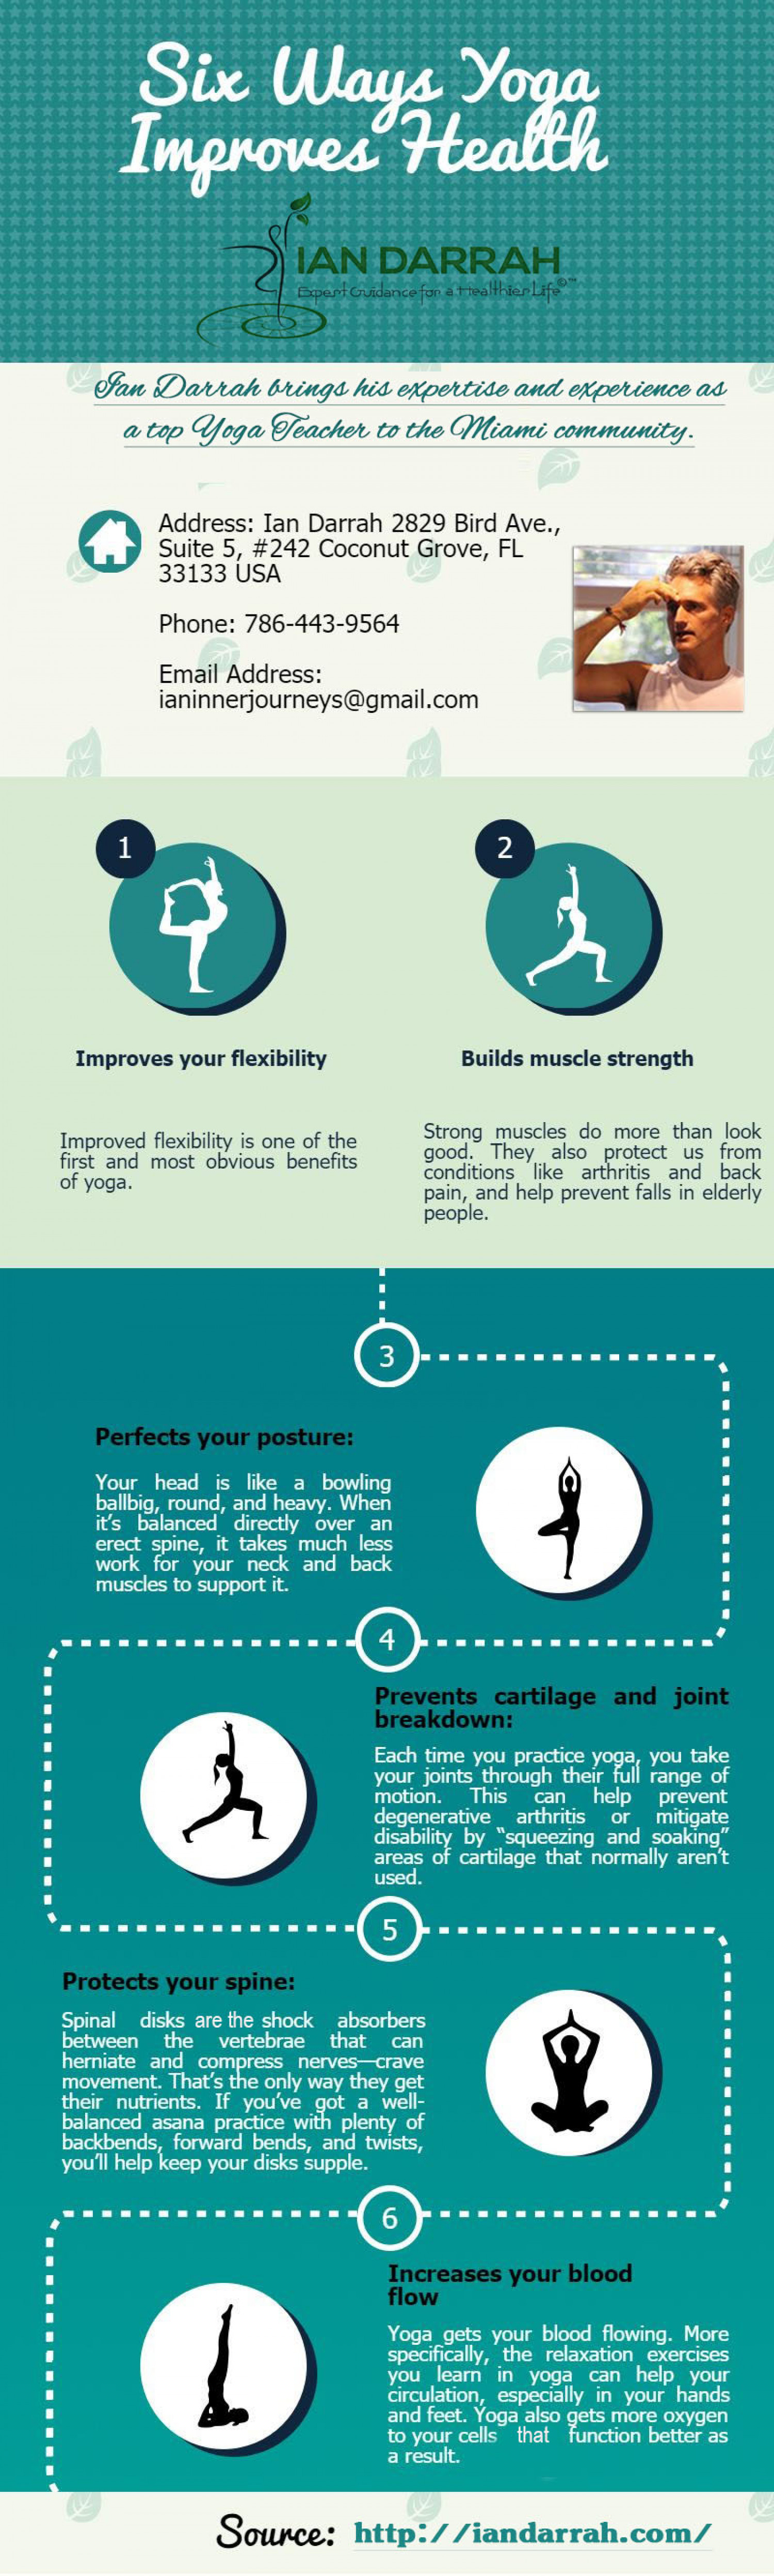 Six Ways Yoga Improves Health Infographic